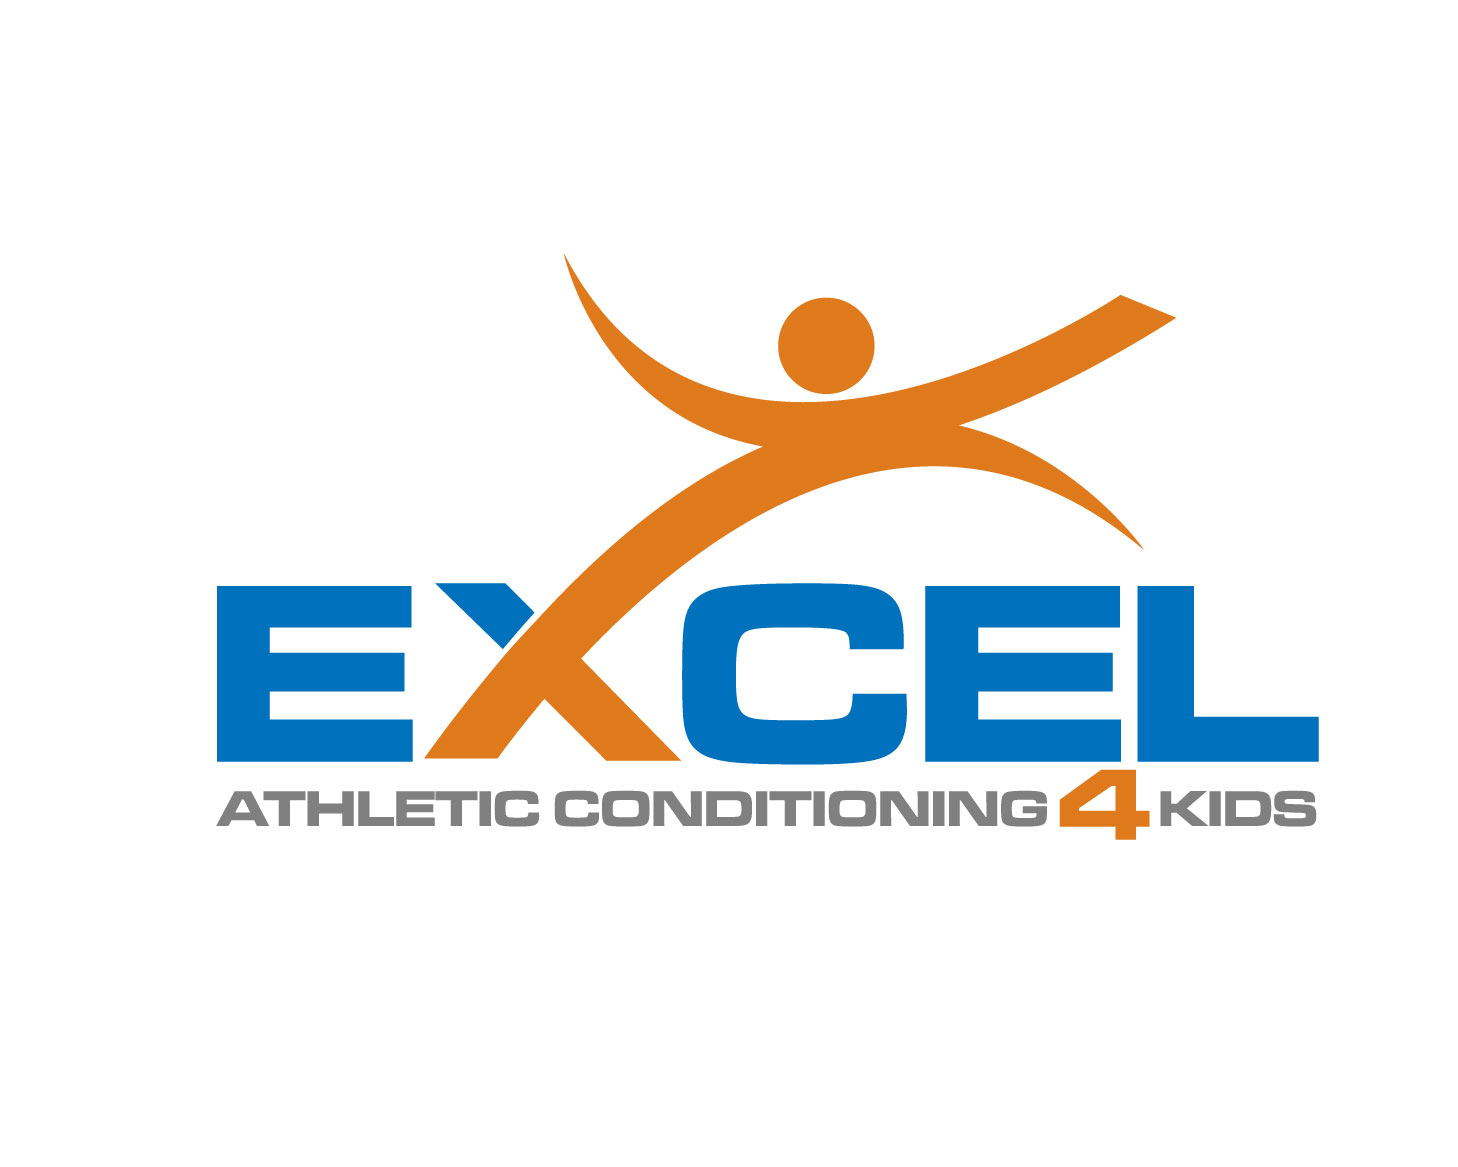 Logo Design by Private User - Entry No. 96 in the Logo Design Contest Artistic Logo Design for Excel Athletic Conditioning 4 kids.